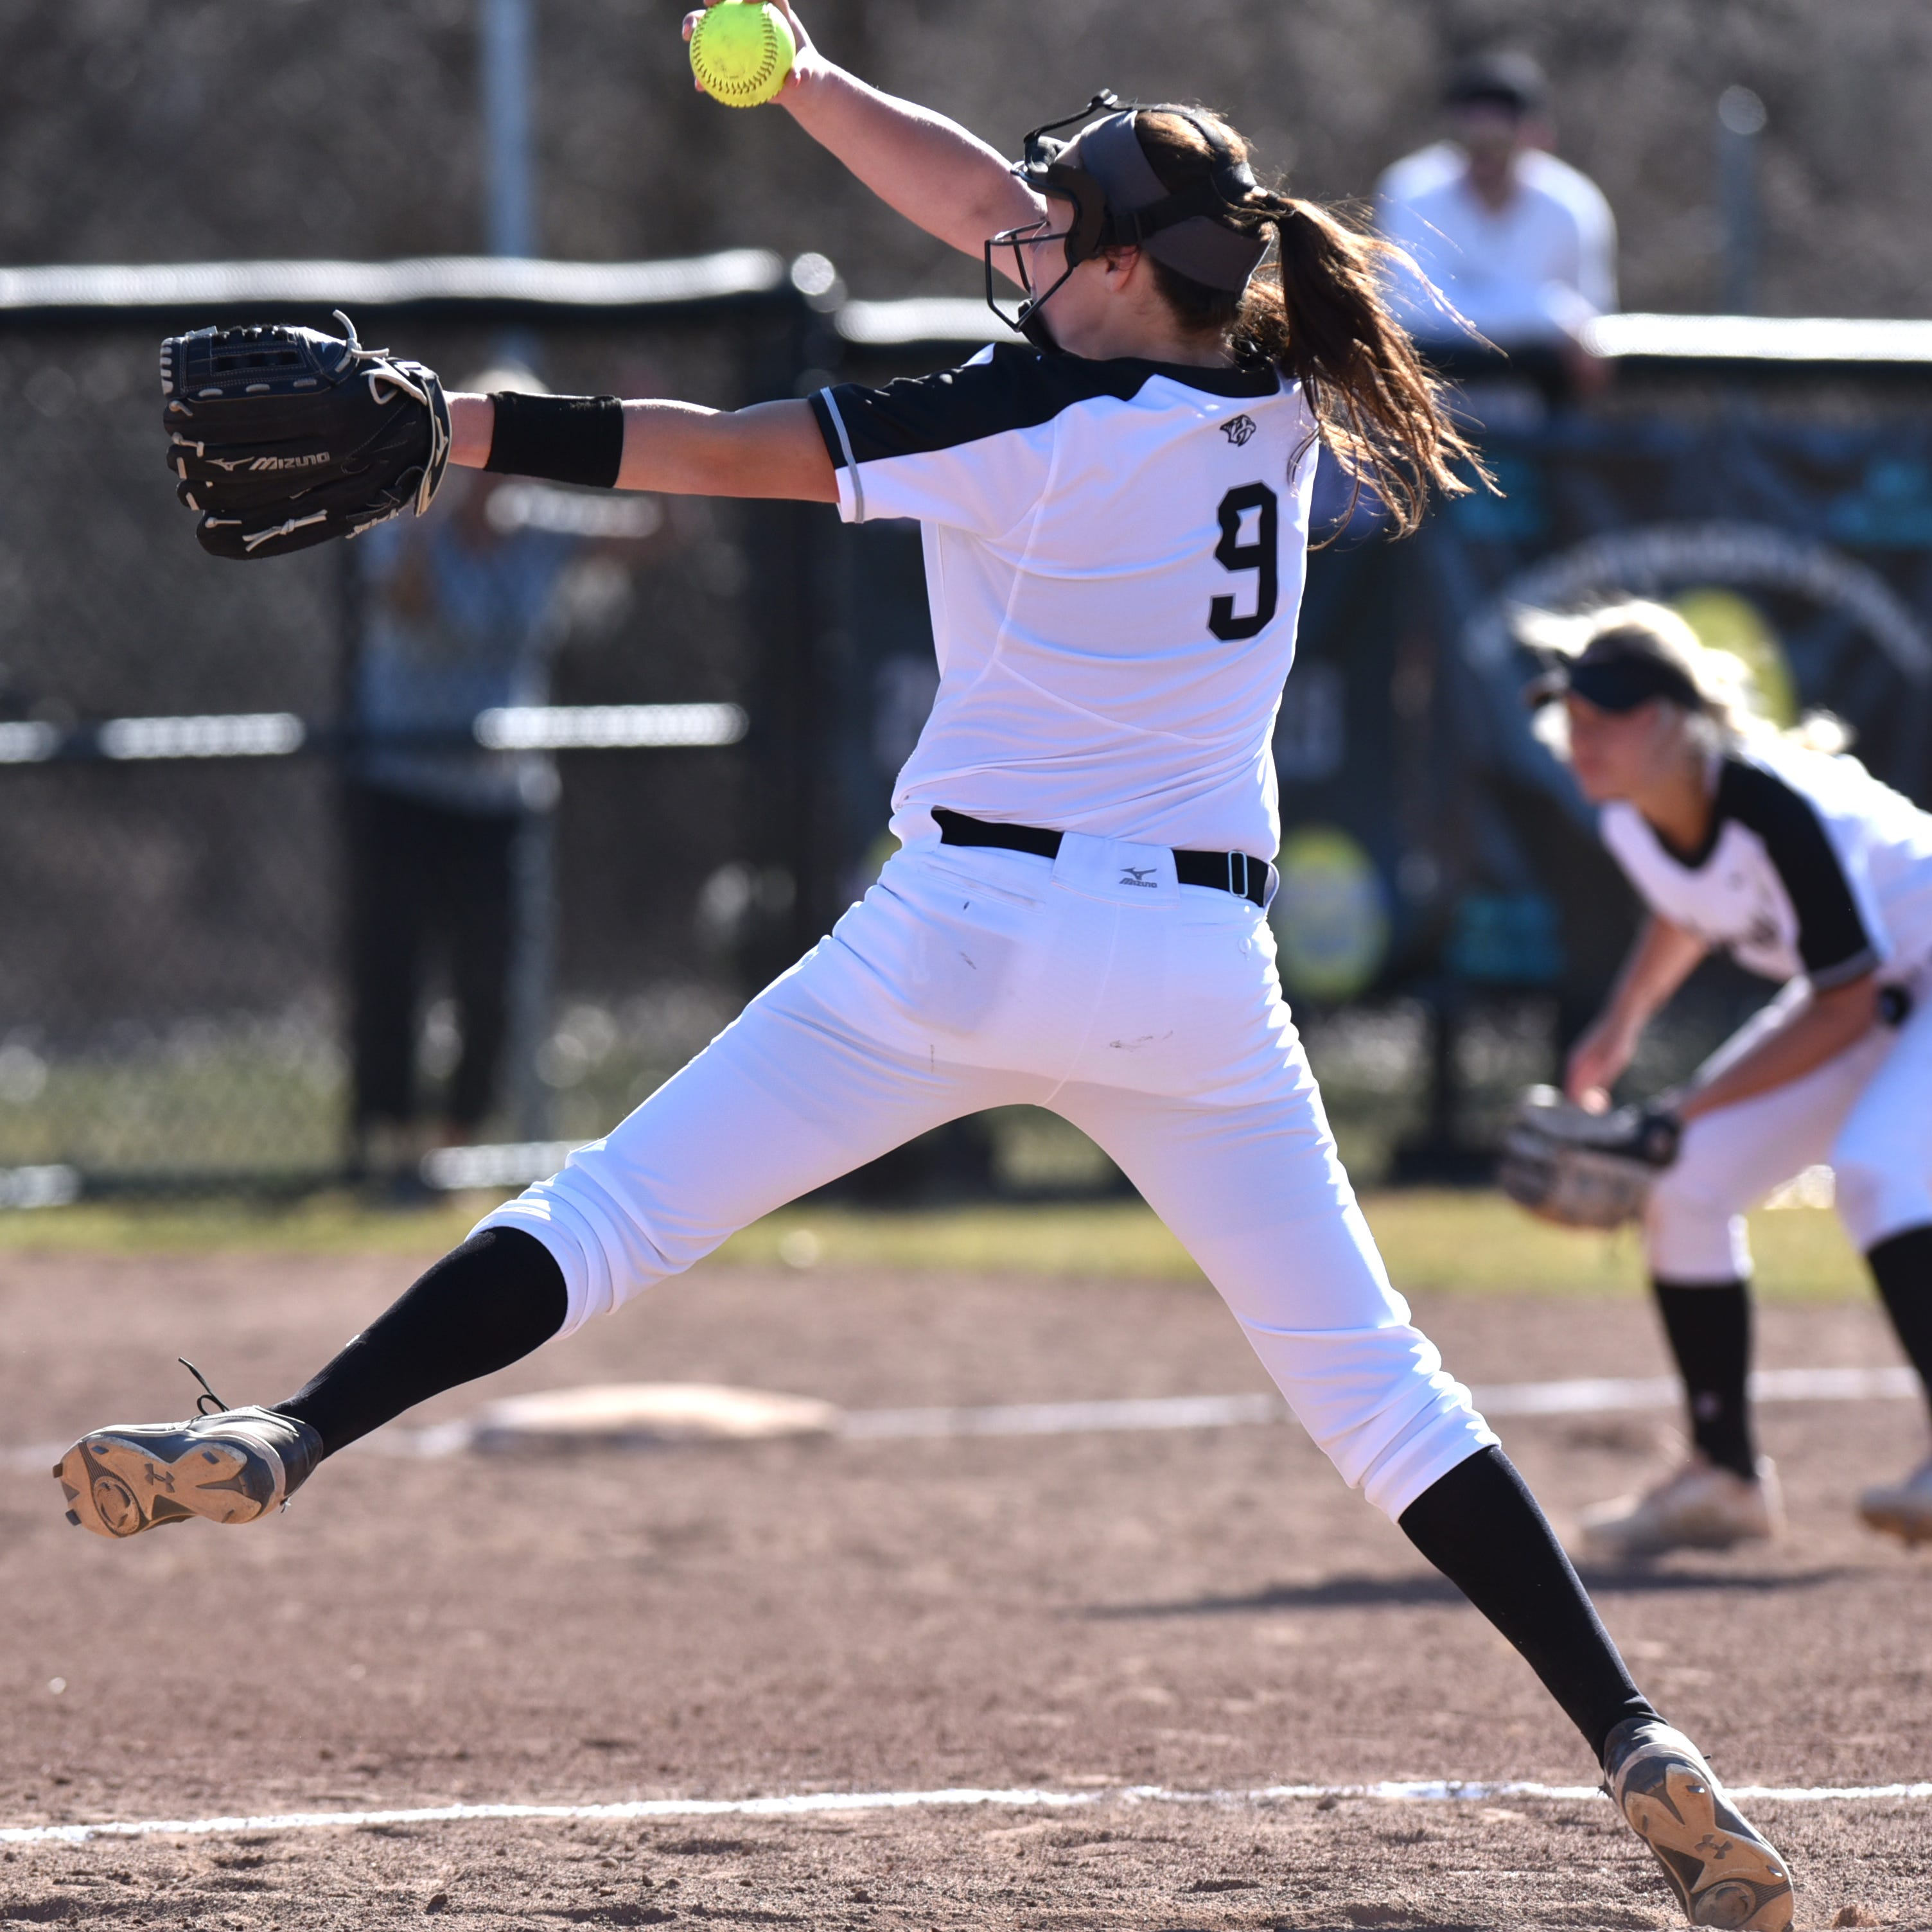 Softball Scoreboard: Plymouth's Angela Schmidt throws perfect game